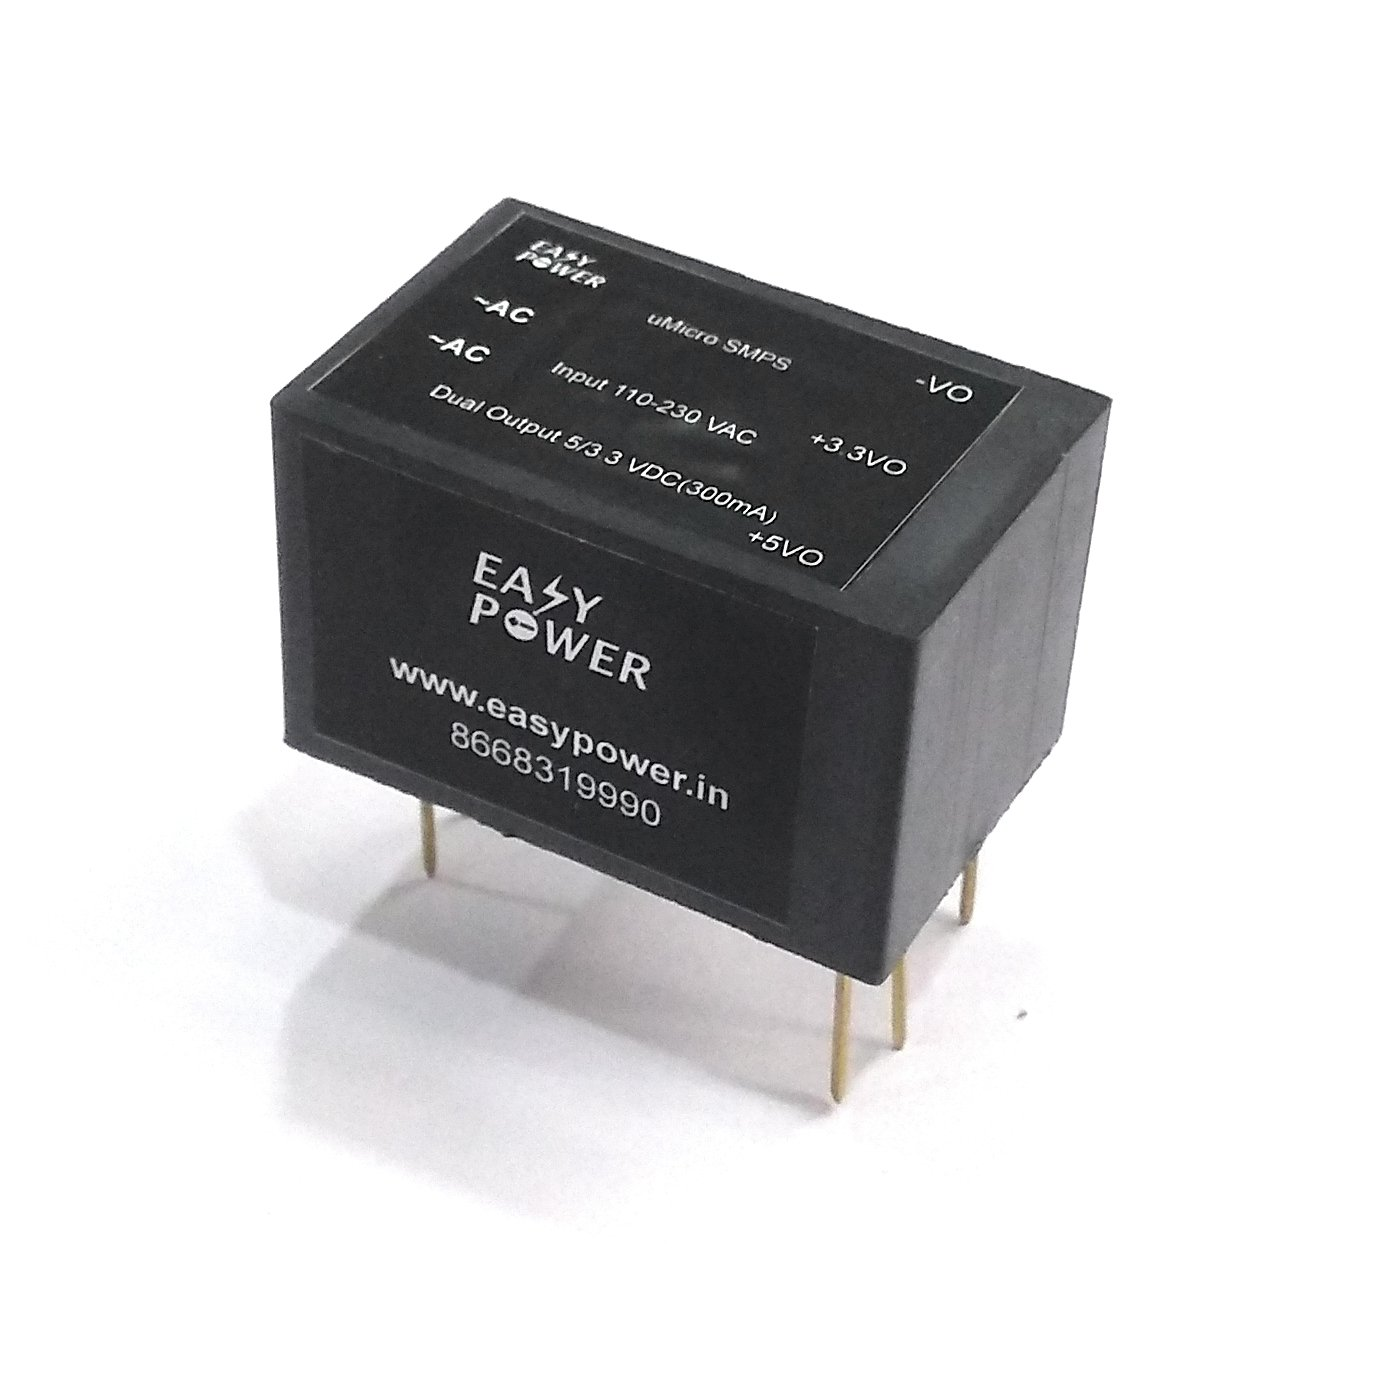 5vdc To 12v And Isolated Dual Power Supply Easy Ac Dc Output 230vac 33 Step Electronics